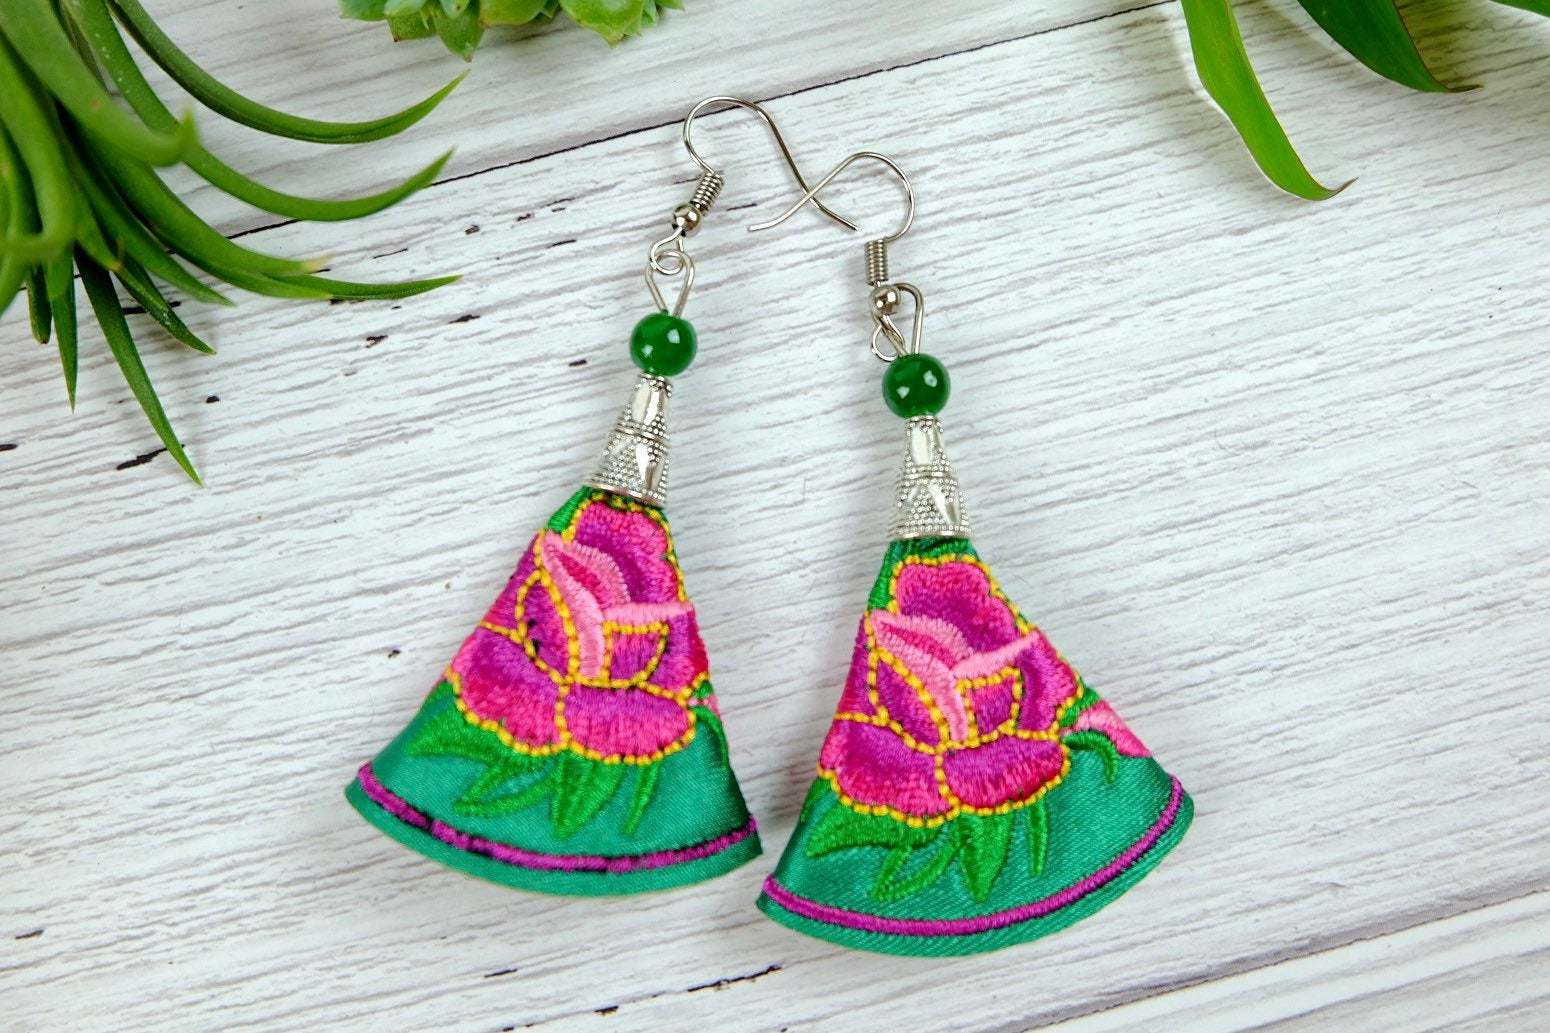 Floral Embroidery Dangle Earrings, Colorful Fabric Handmade Jewelry